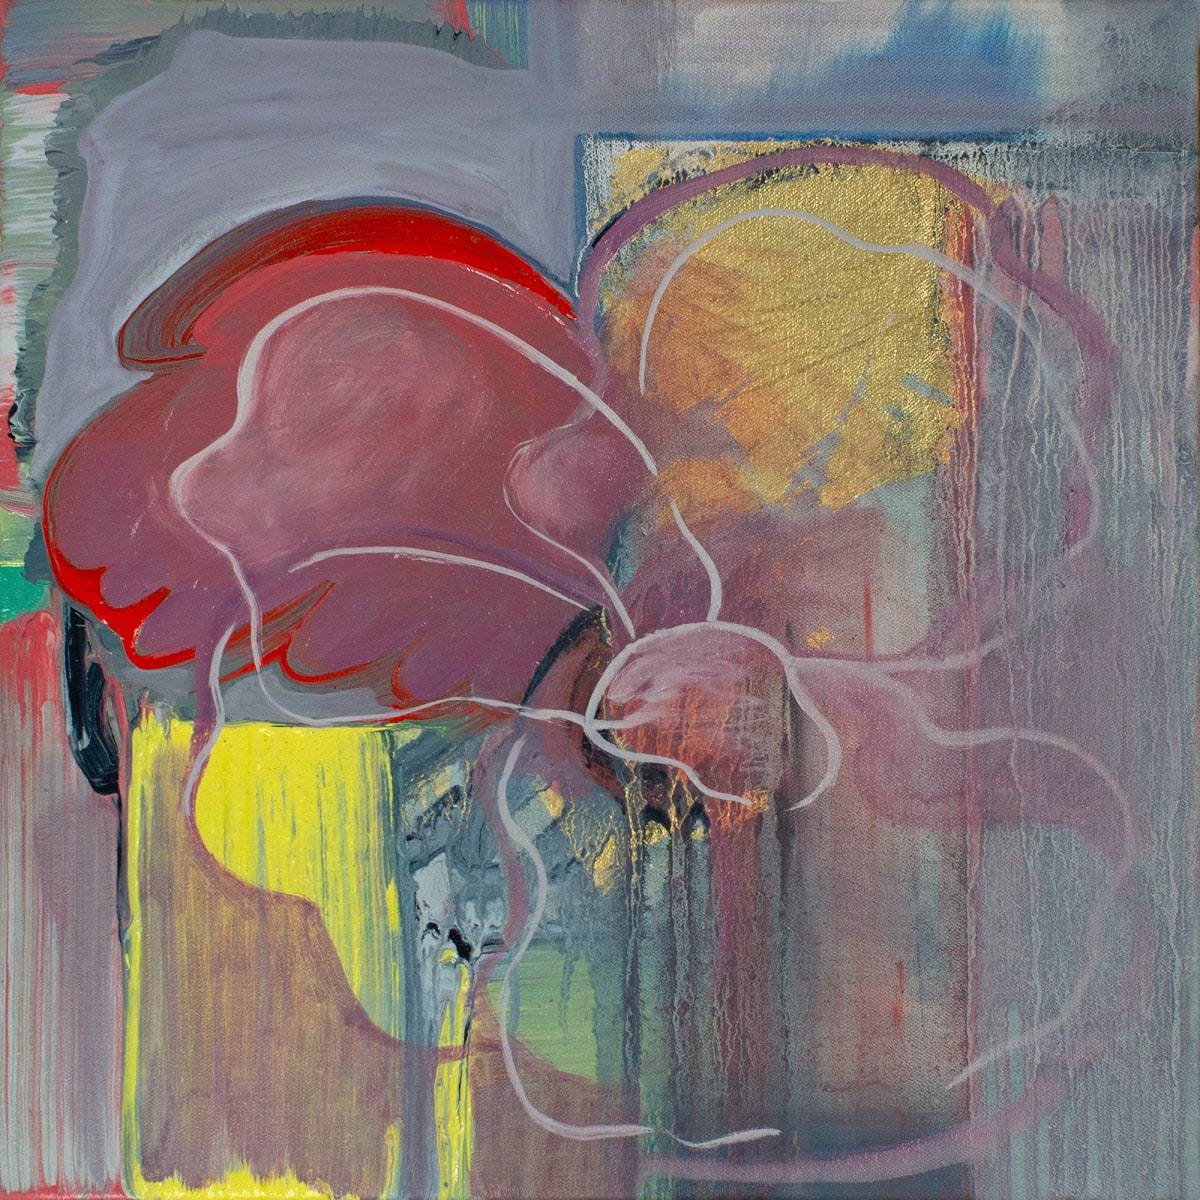 Abstract Study (poppy) by Pamela Staker